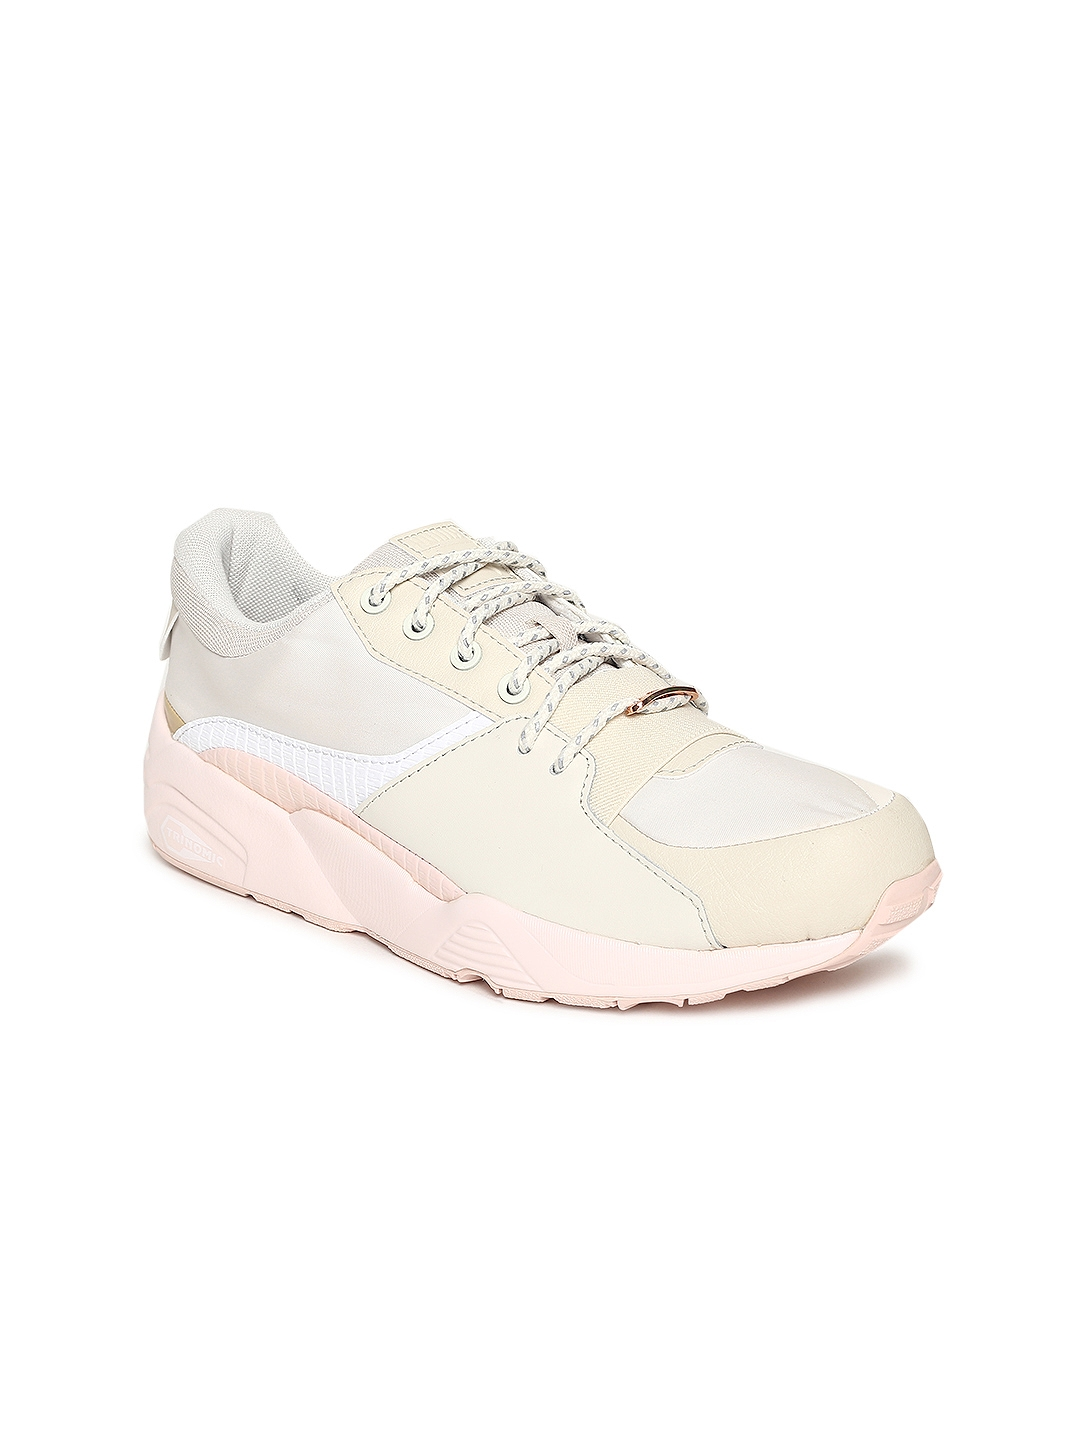 f678a8652aa9 Buy Puma Women Light Pink R698 Rioja Sneakers - Casual Shoes for ...